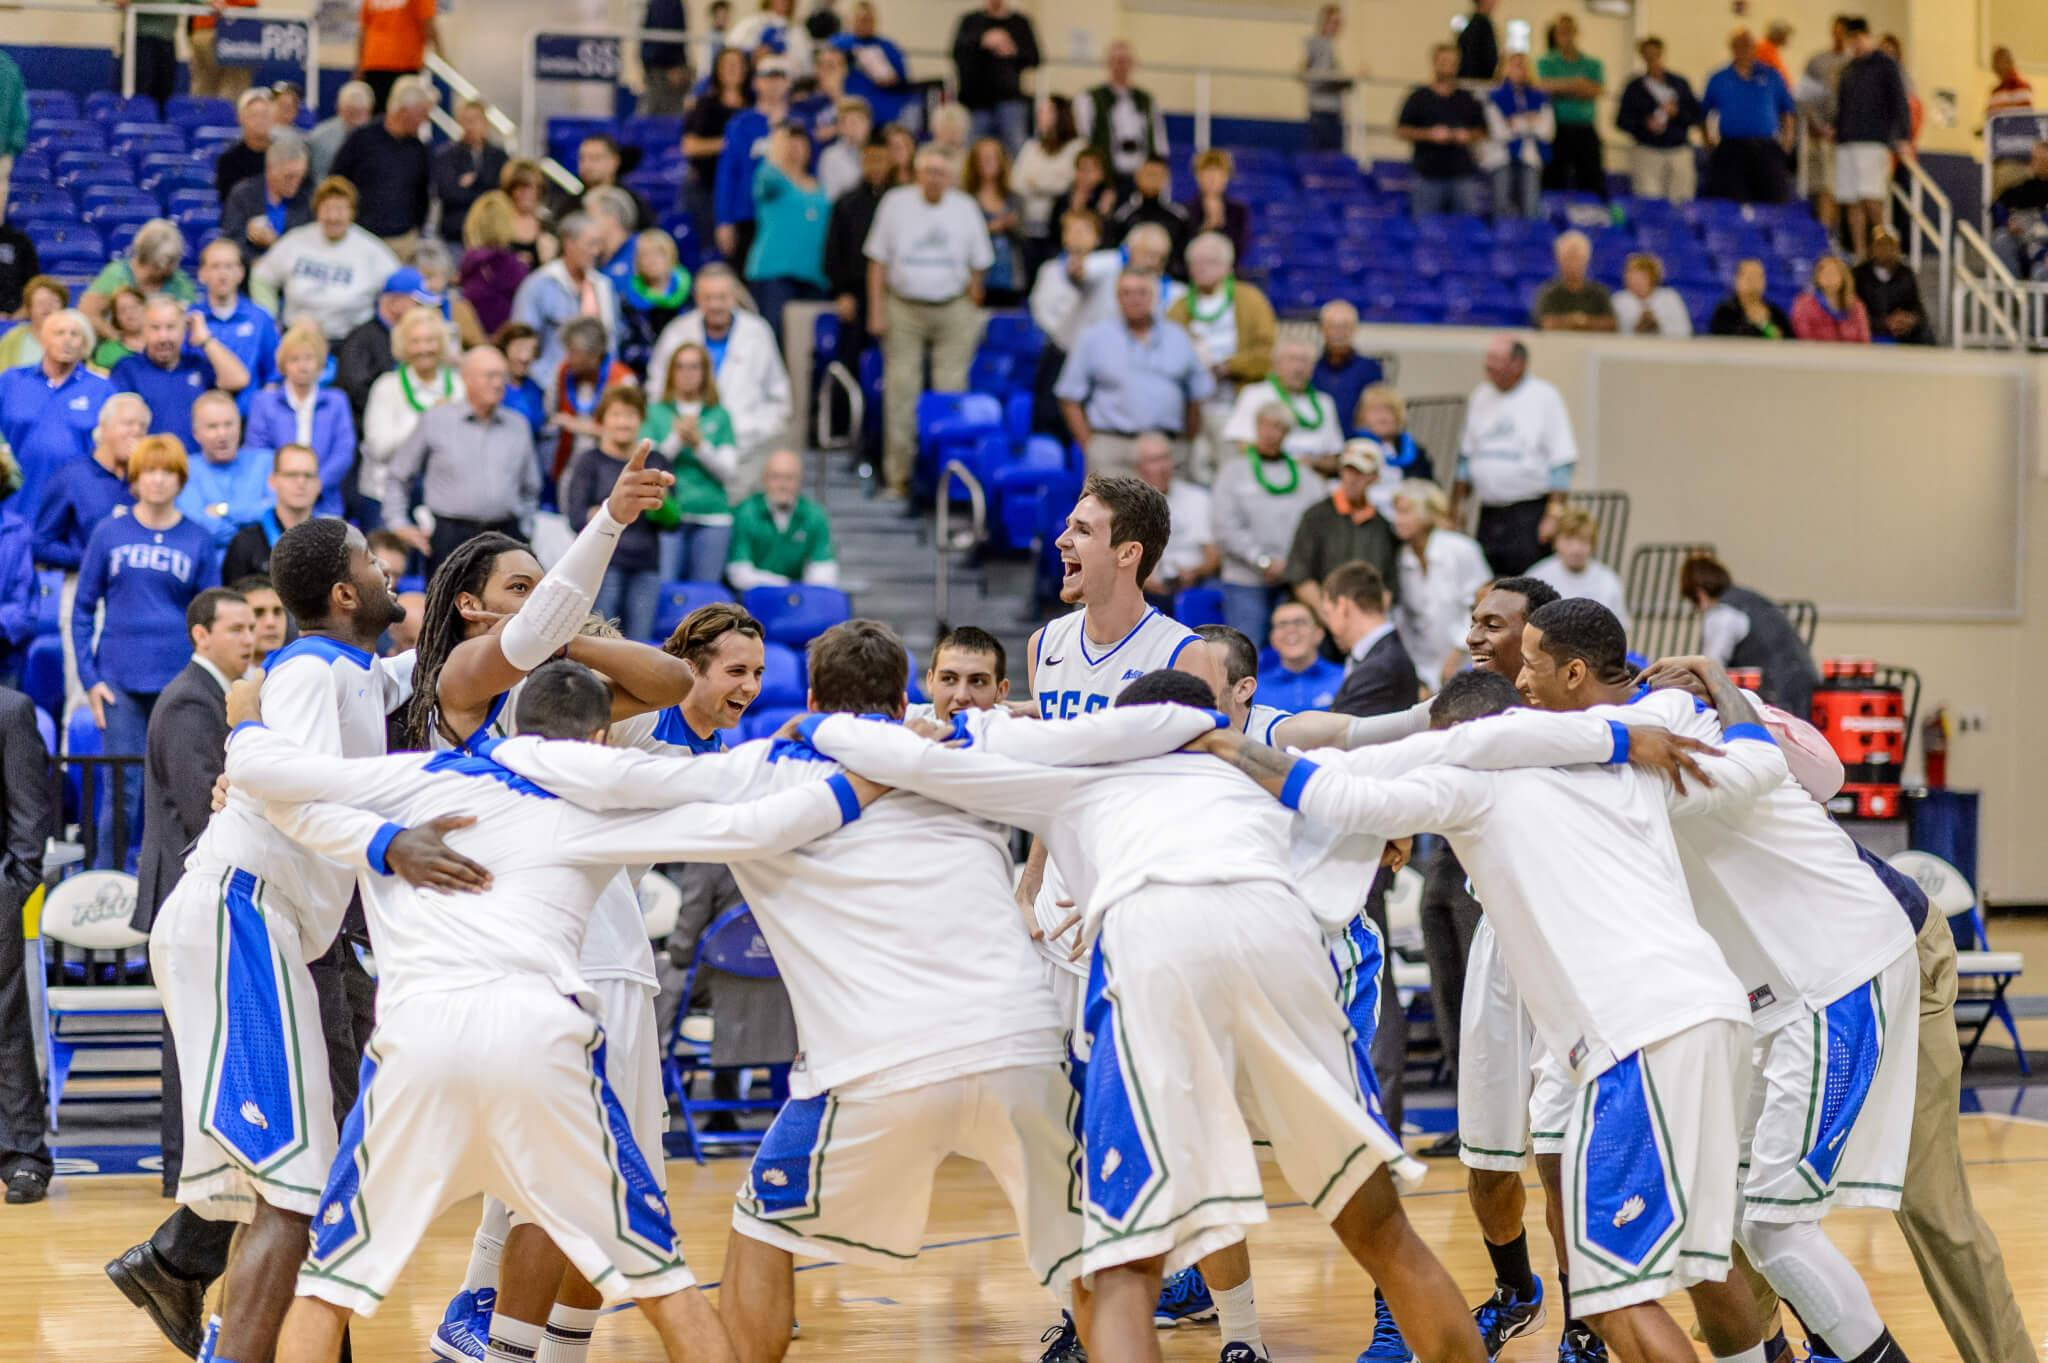 FGCU secures spot in A-Sun basketball championship